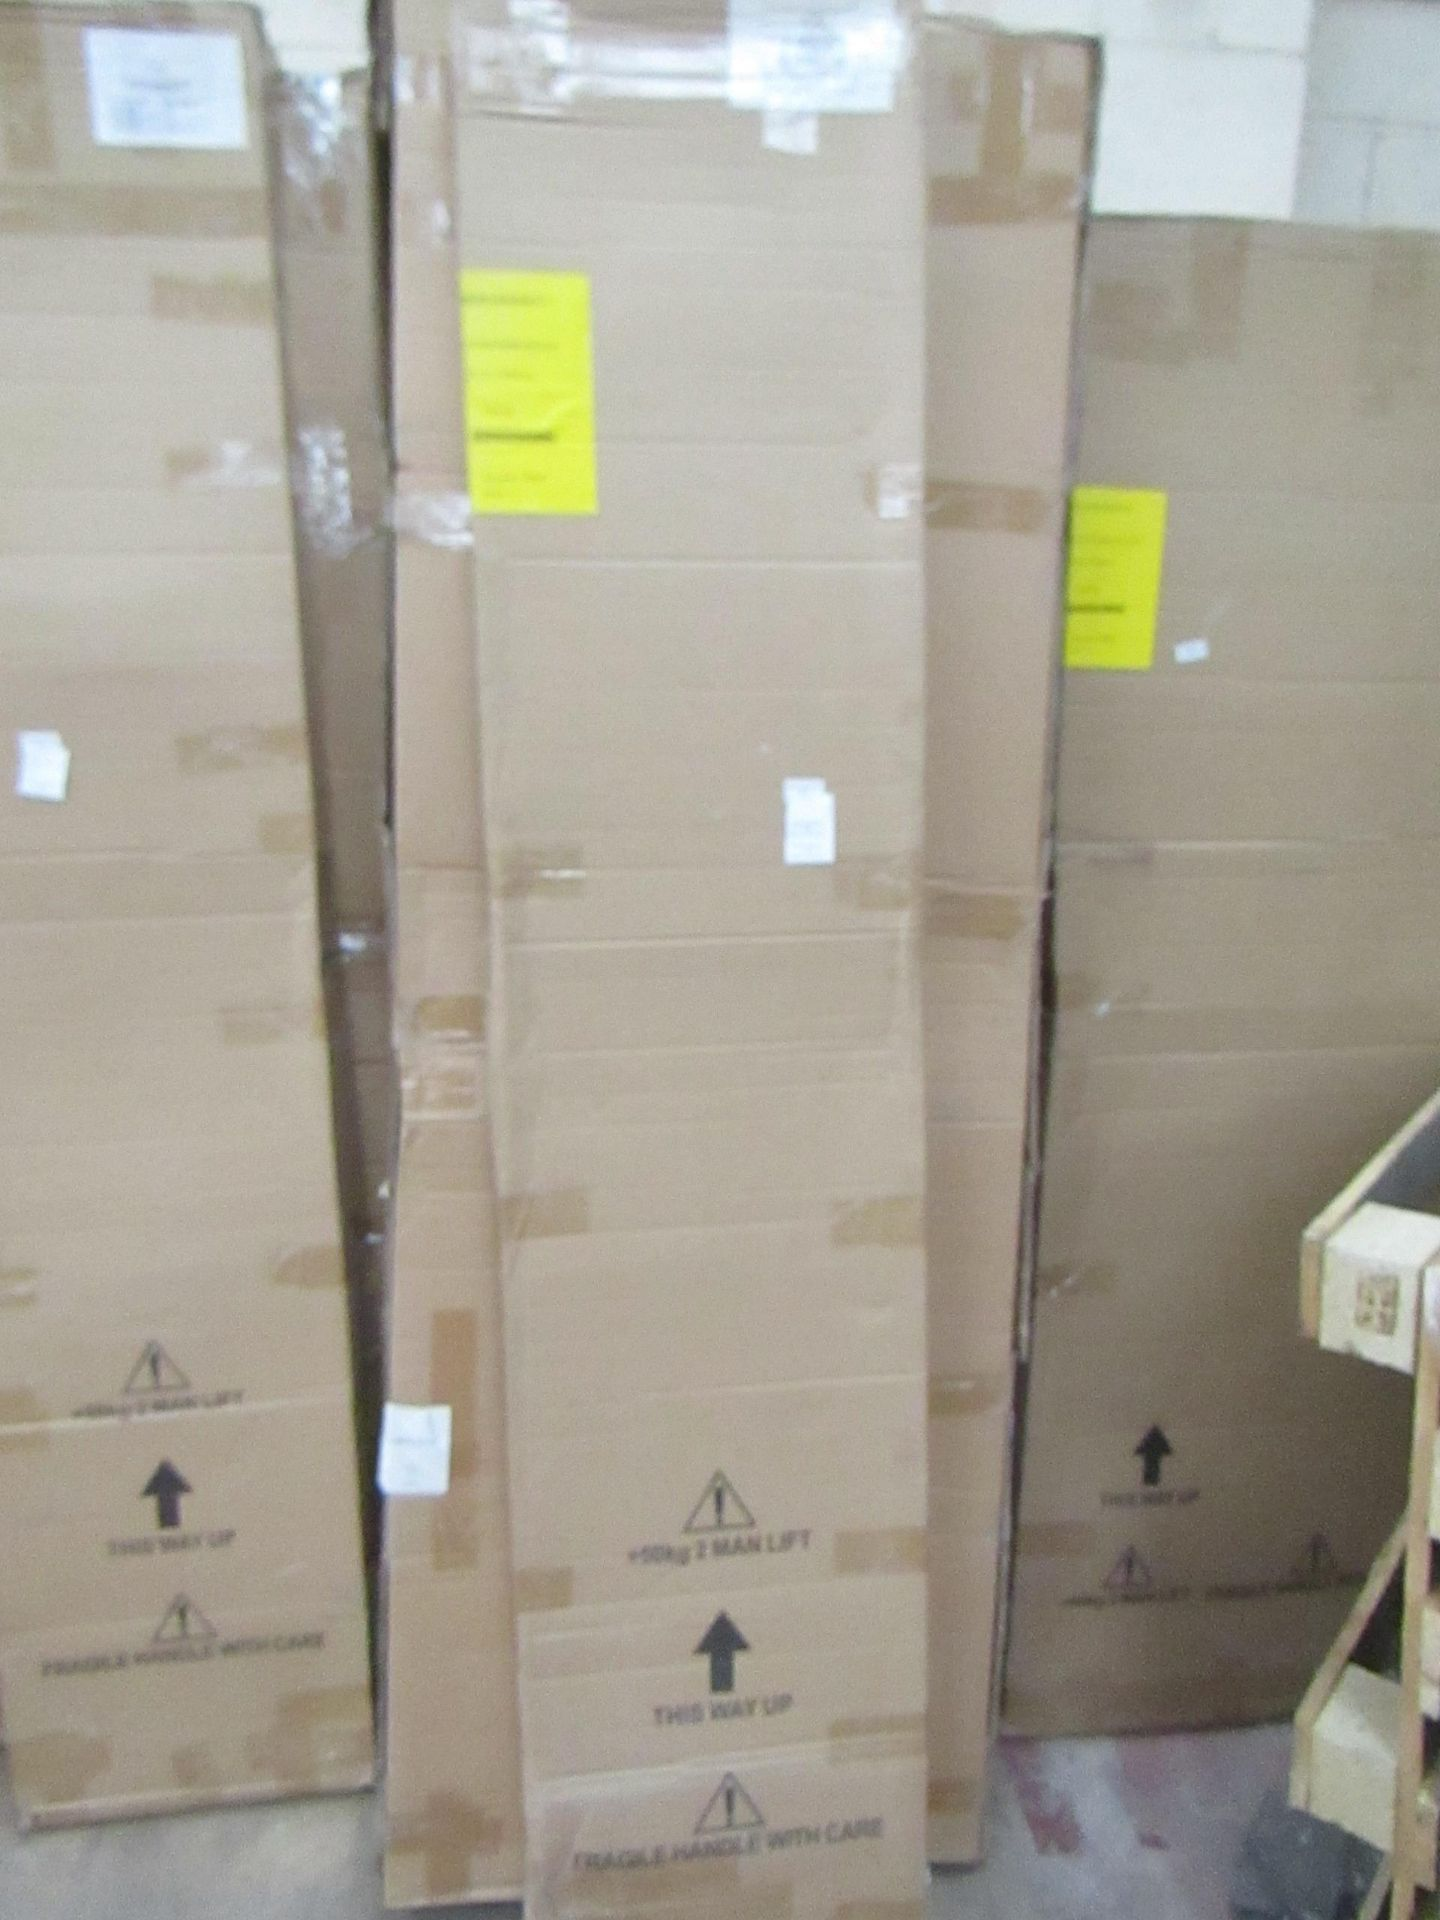 Manhattan glass Quad shower enclosure (no Tray), 800x800m, unused and boxed, comes in 2 boxes - Image 2 of 2